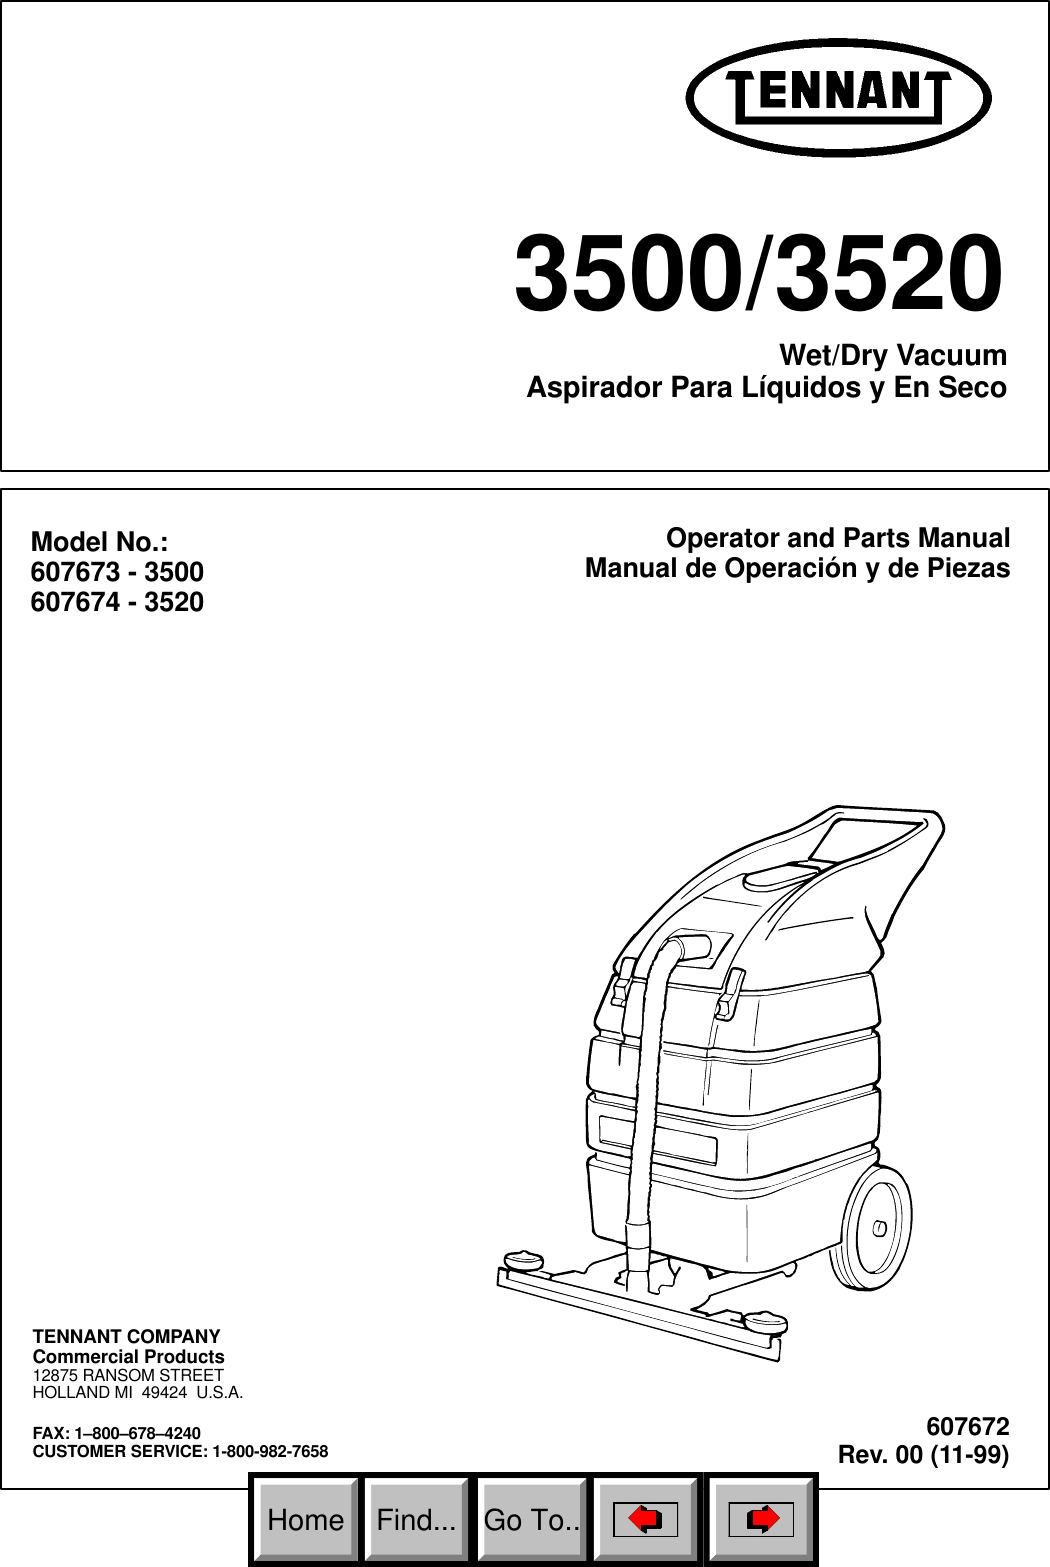 Ten 3500 3520 Parts List And Operator Manual 11 99 To 5 06 Tennant Wiring Diagram